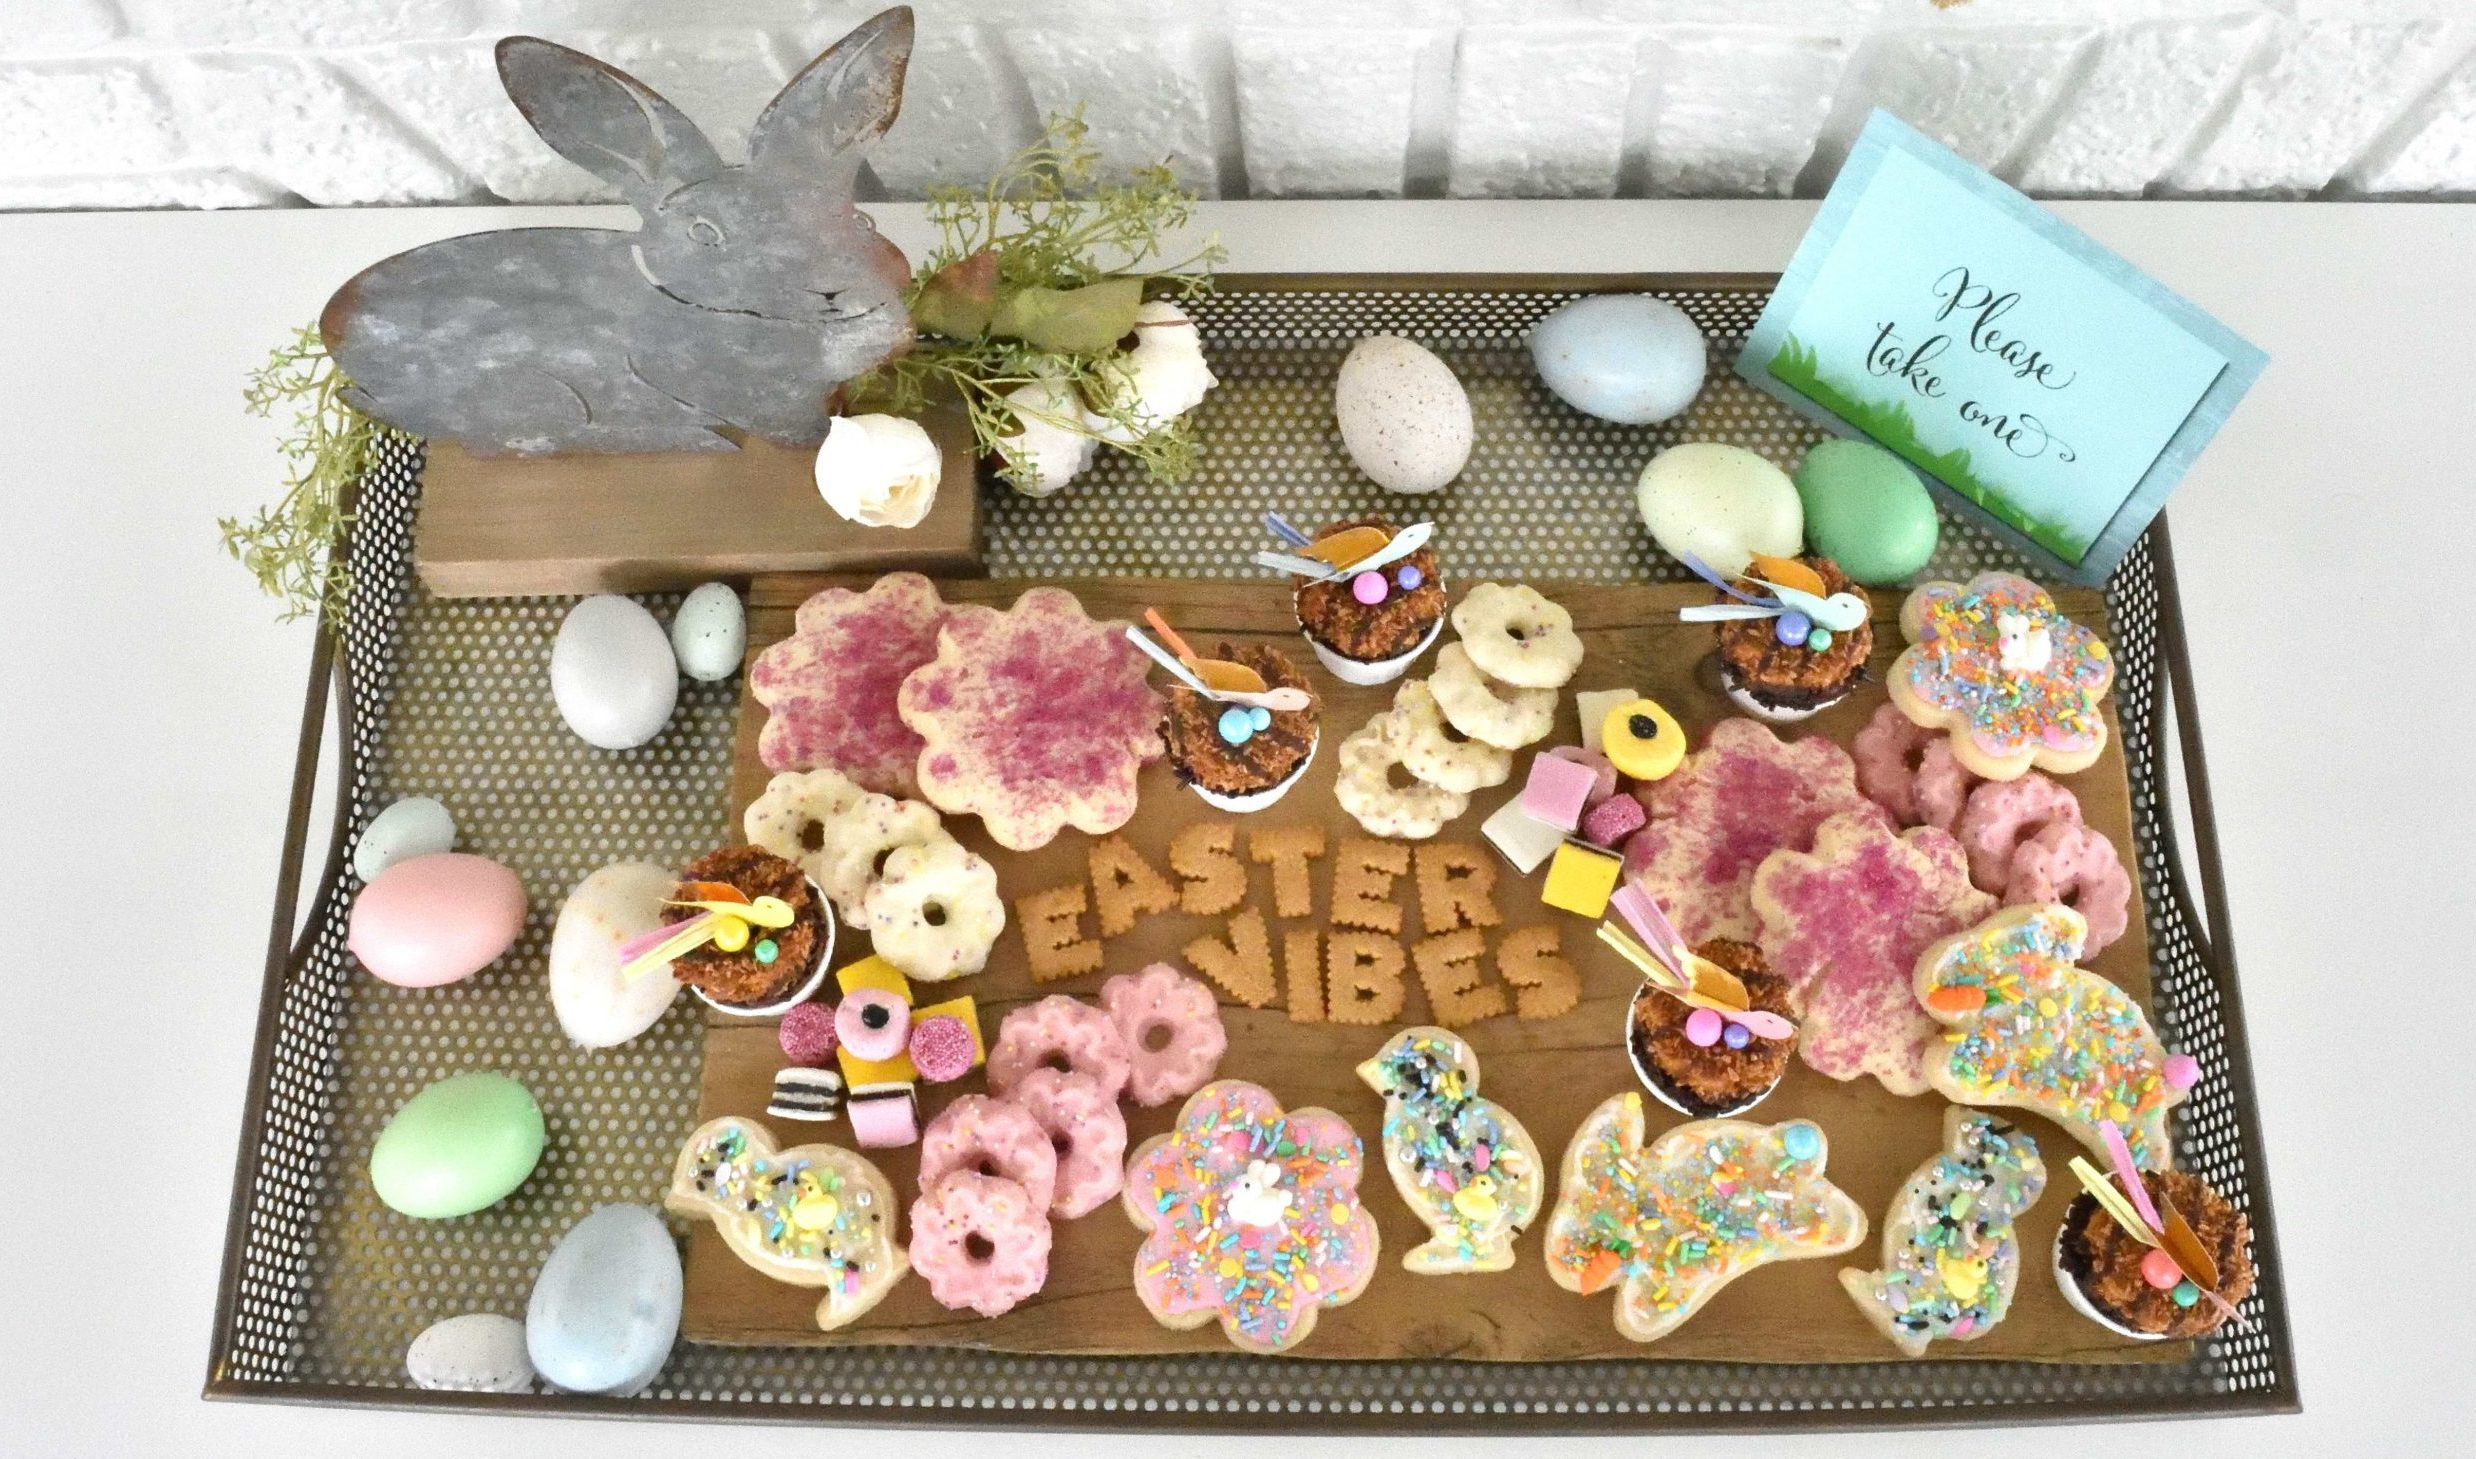 An Easter Dessert Grazing Board Is A Delicious Way To Celebrate The Holiday